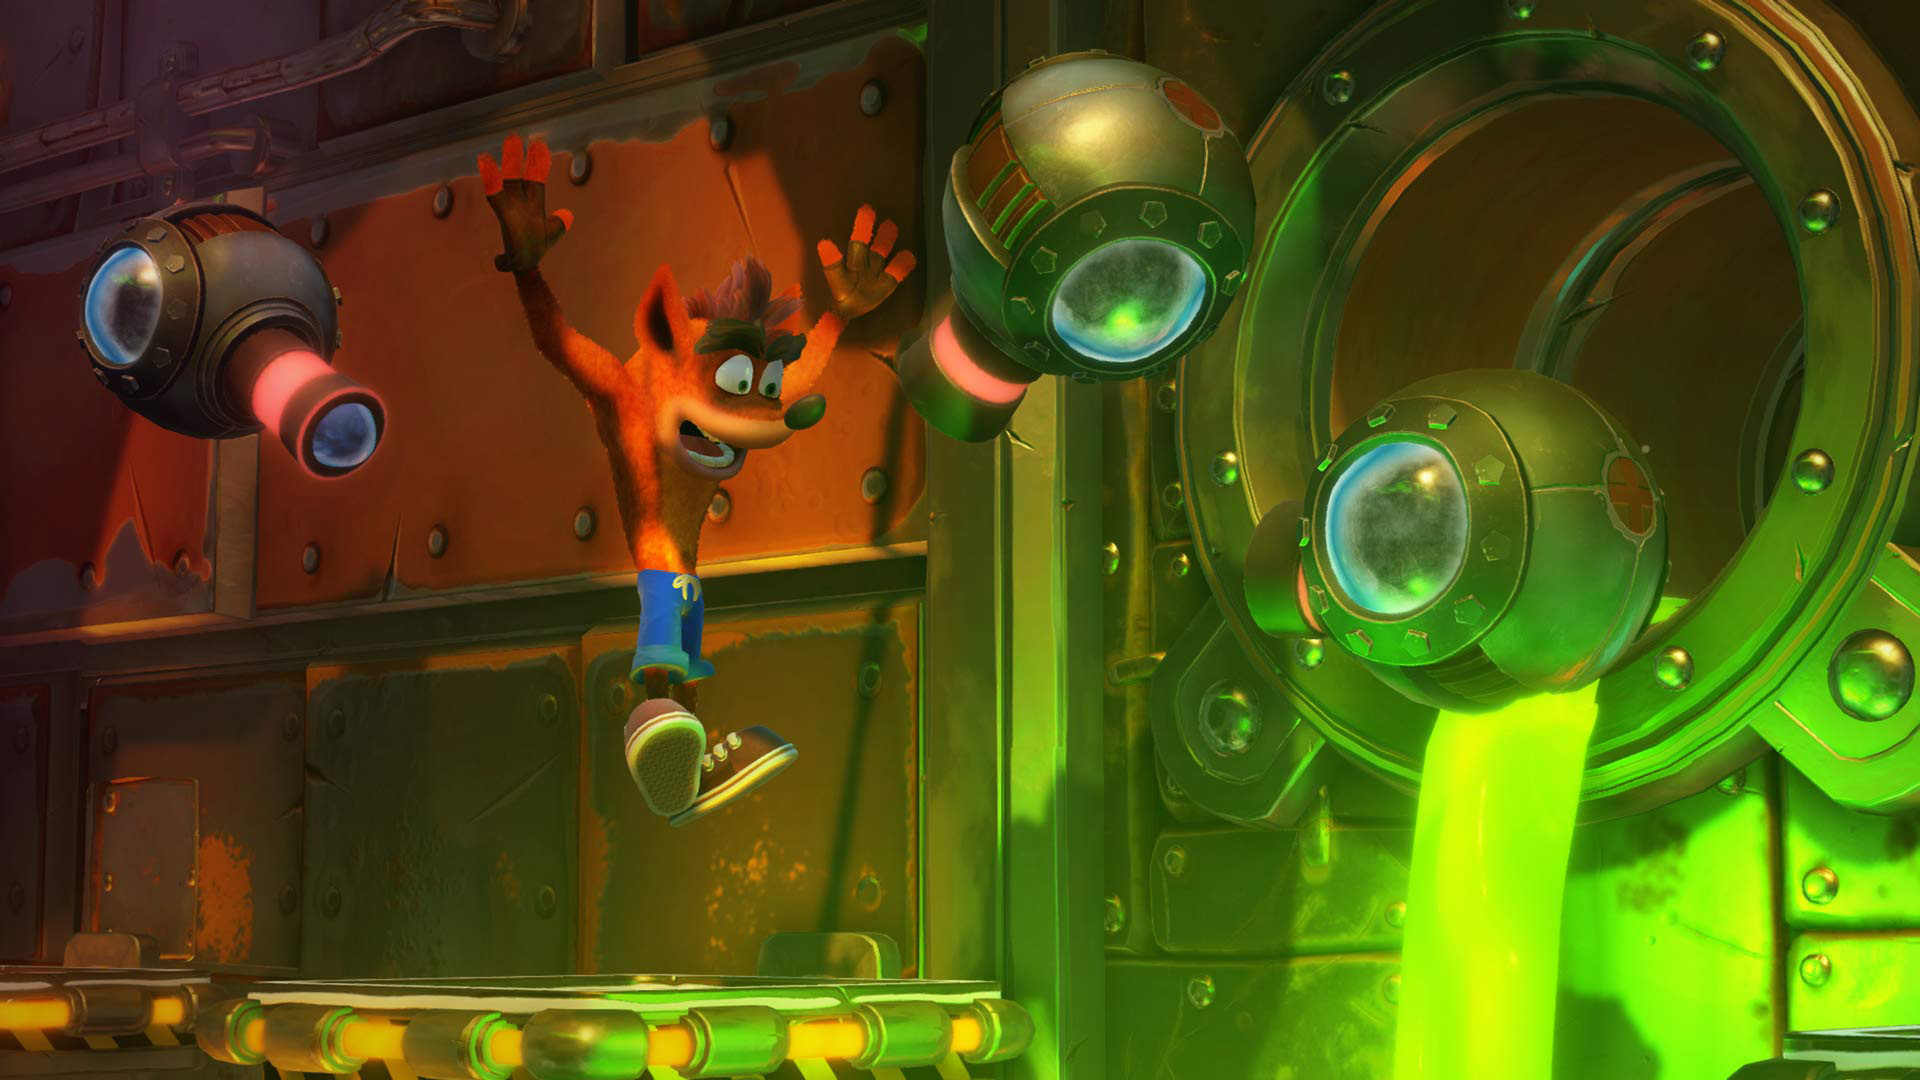 2707-crash-bandicoot-n-sane-trilogy-gallery-10_1